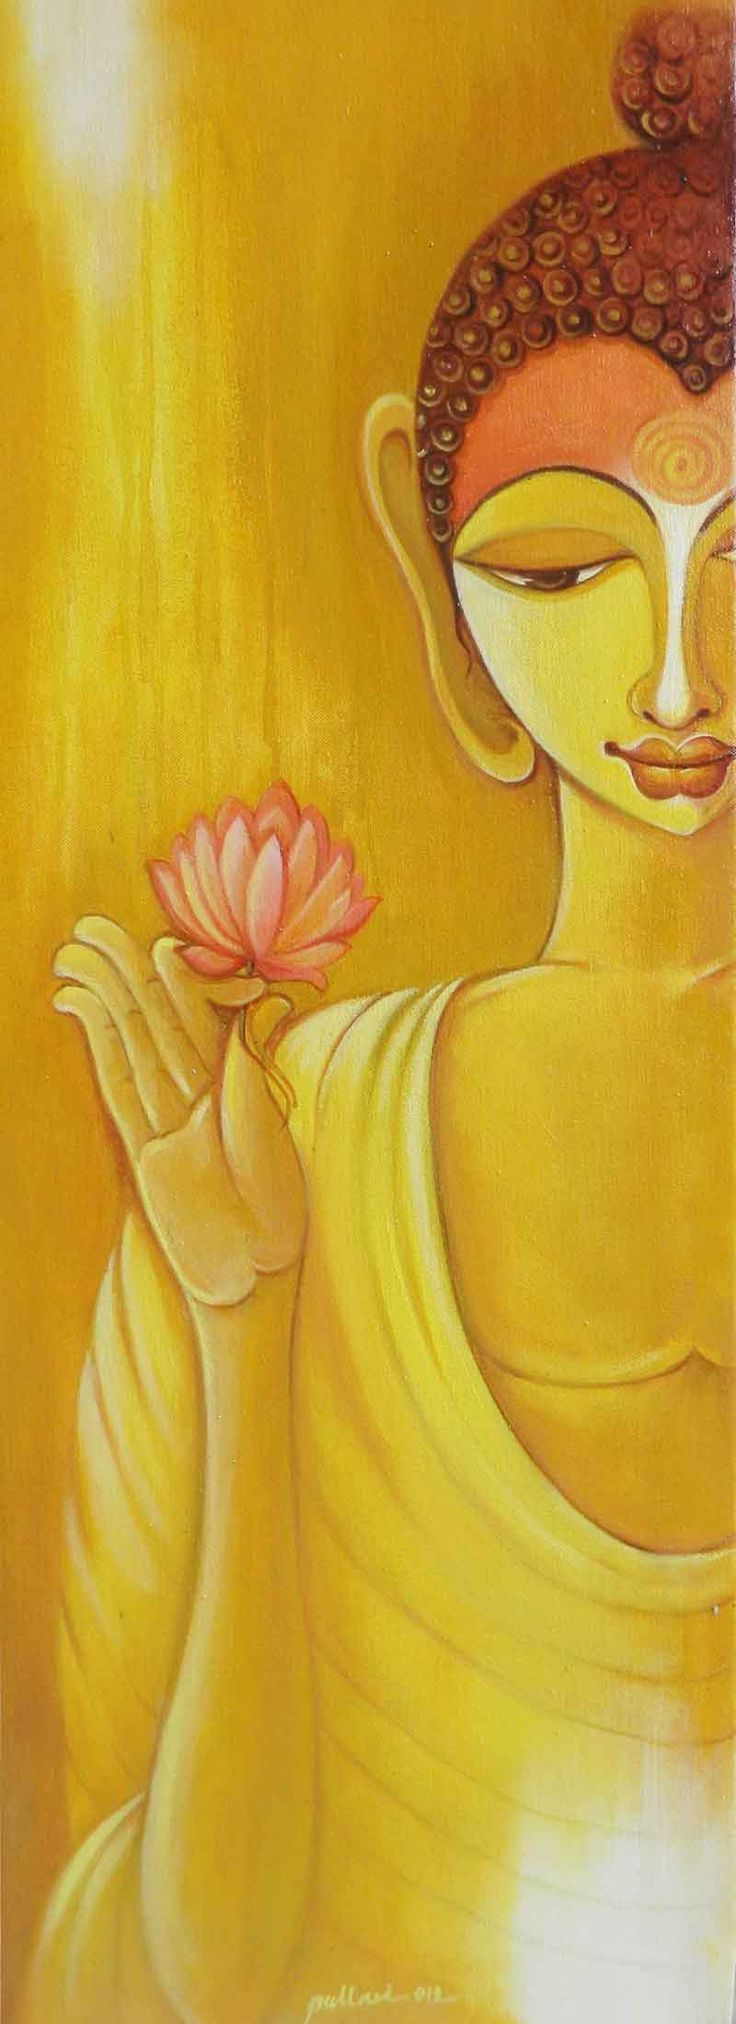 """The greatness of the man's power is the measure of his surrender."" ~ William Booth Artist: Pallavi Walunj ॐ lis"